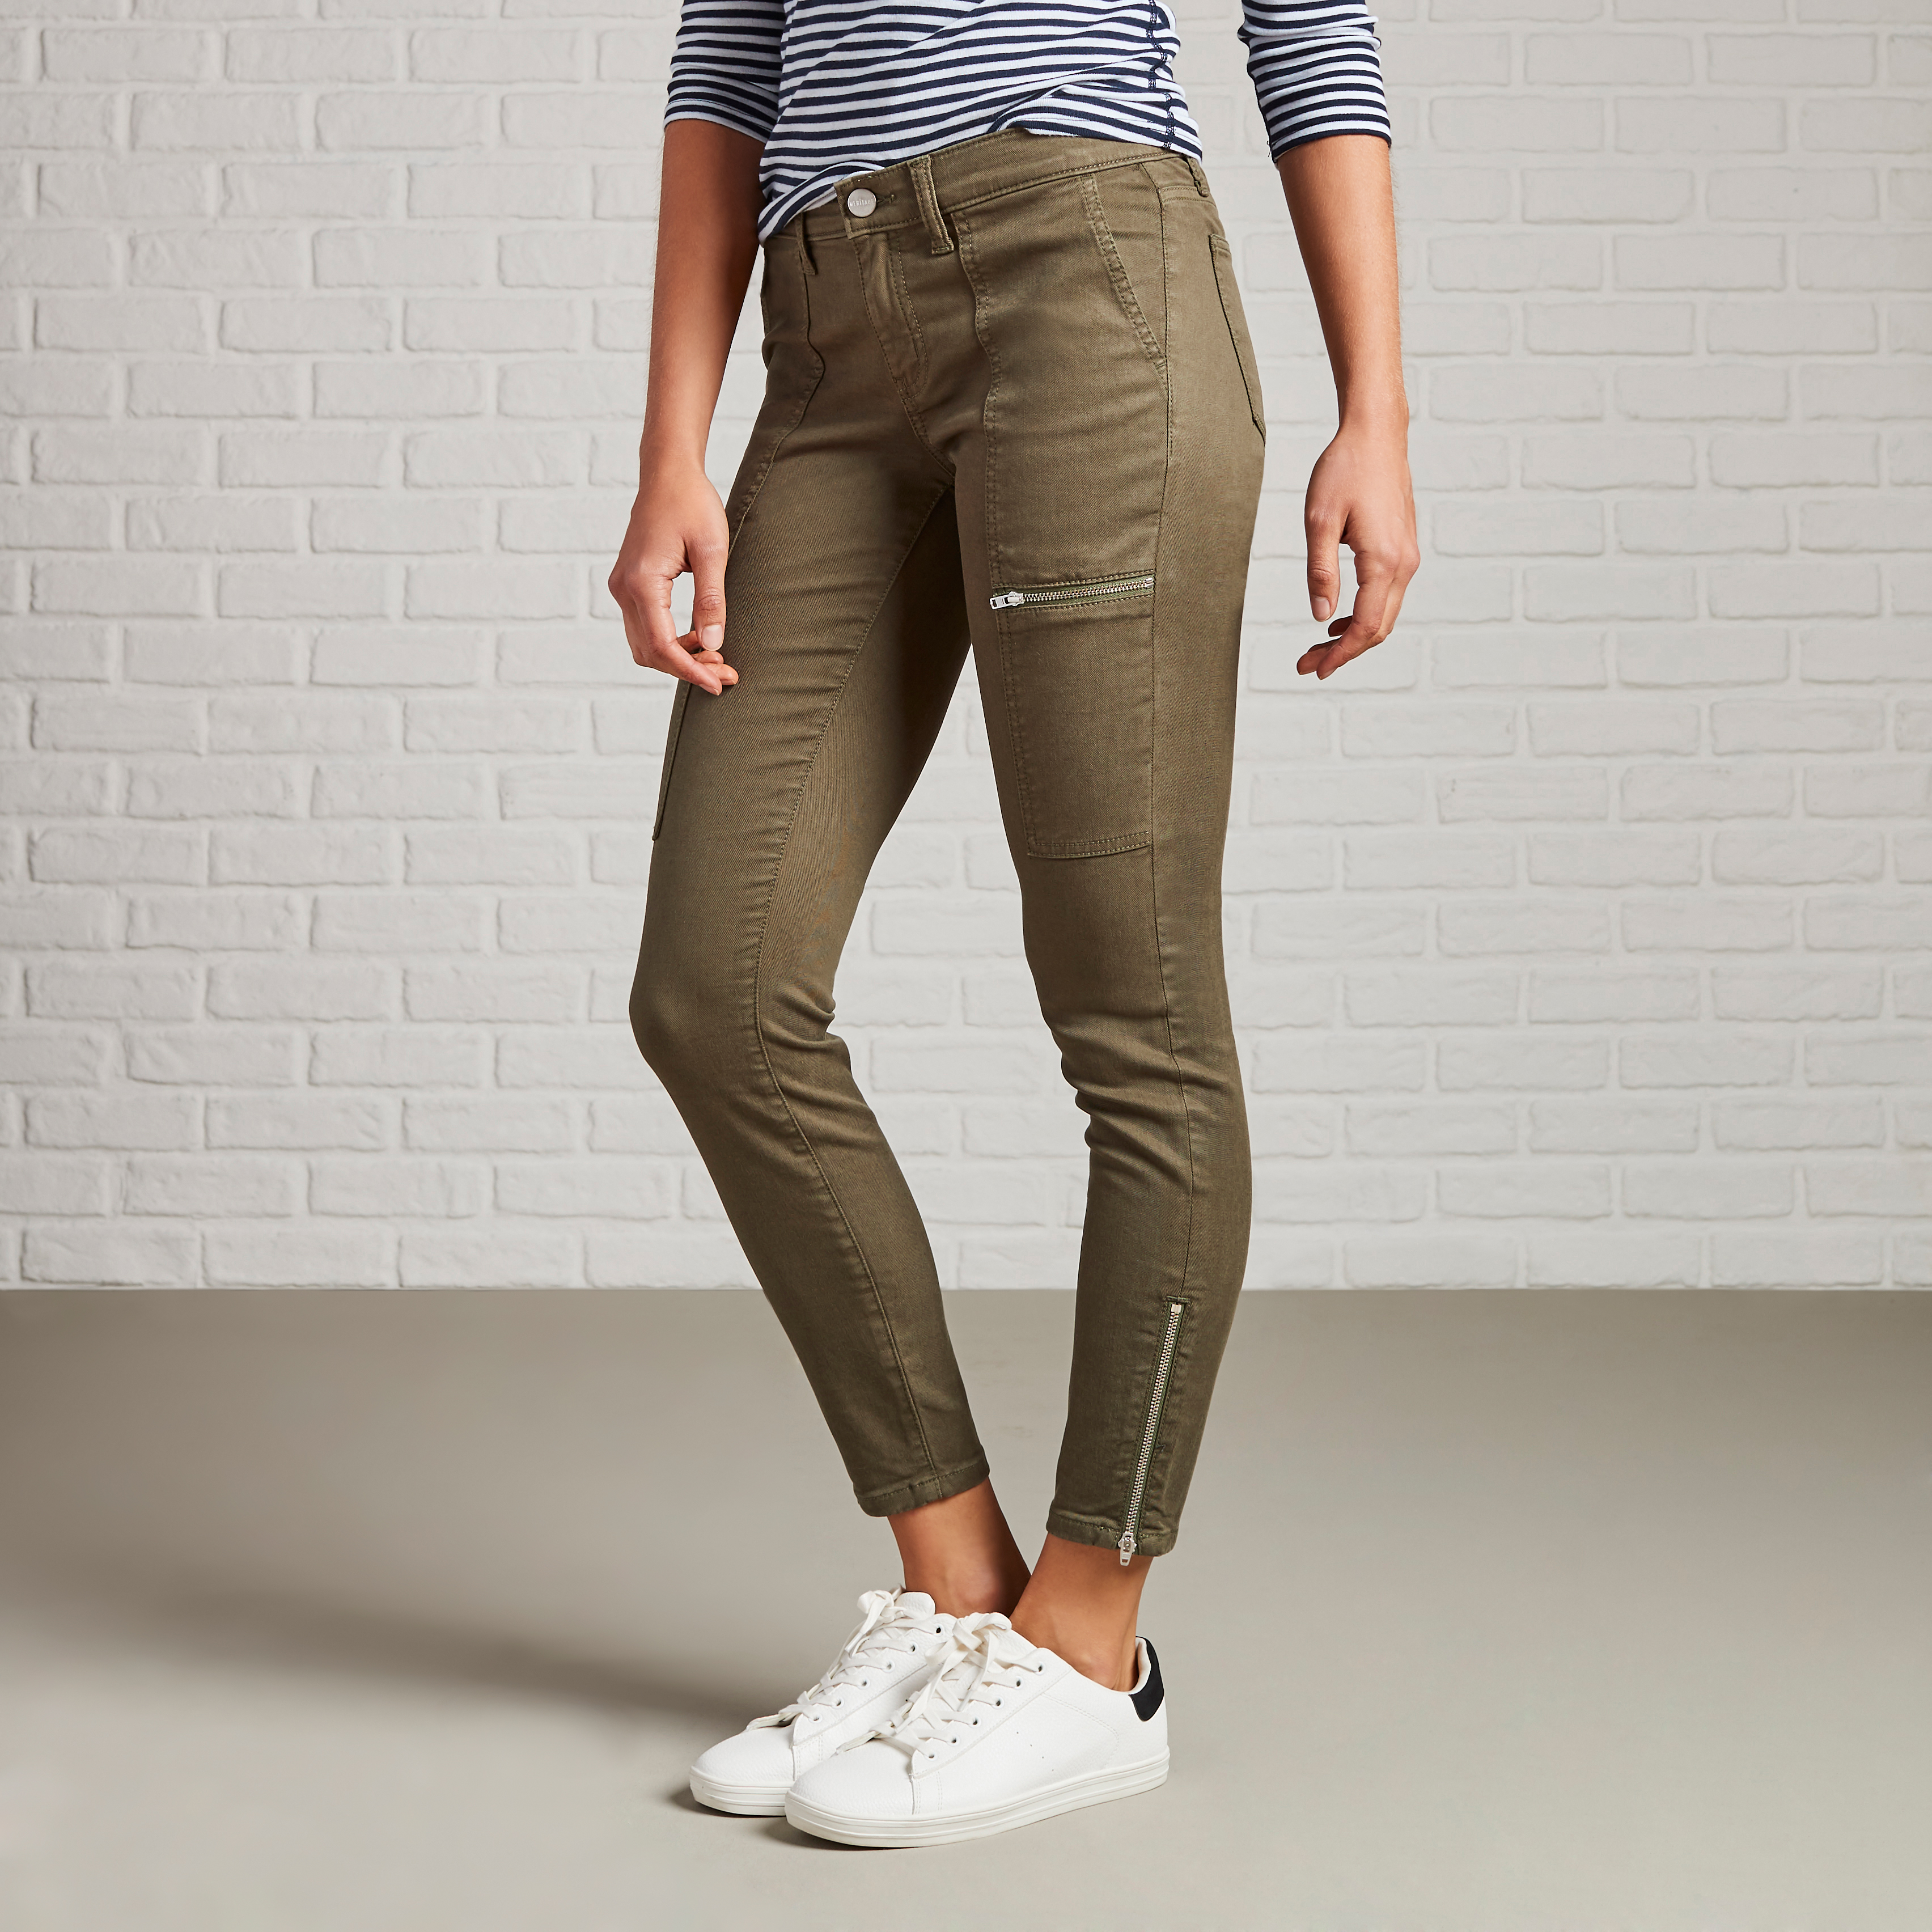 Non-Denim Pants for Fall: Utility Chino